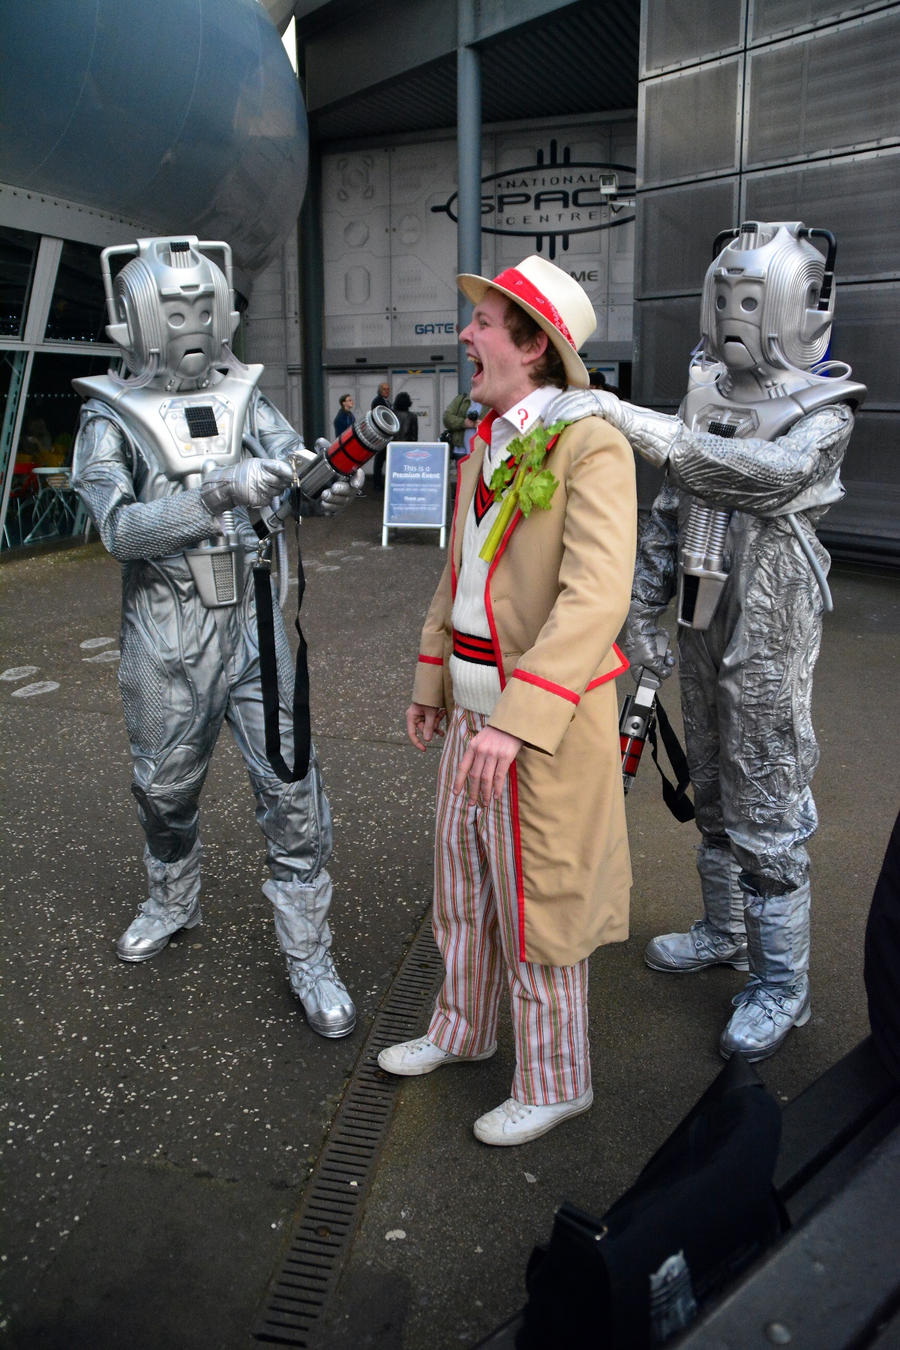 5th Doctor caught by Cybermen (1) by masimage